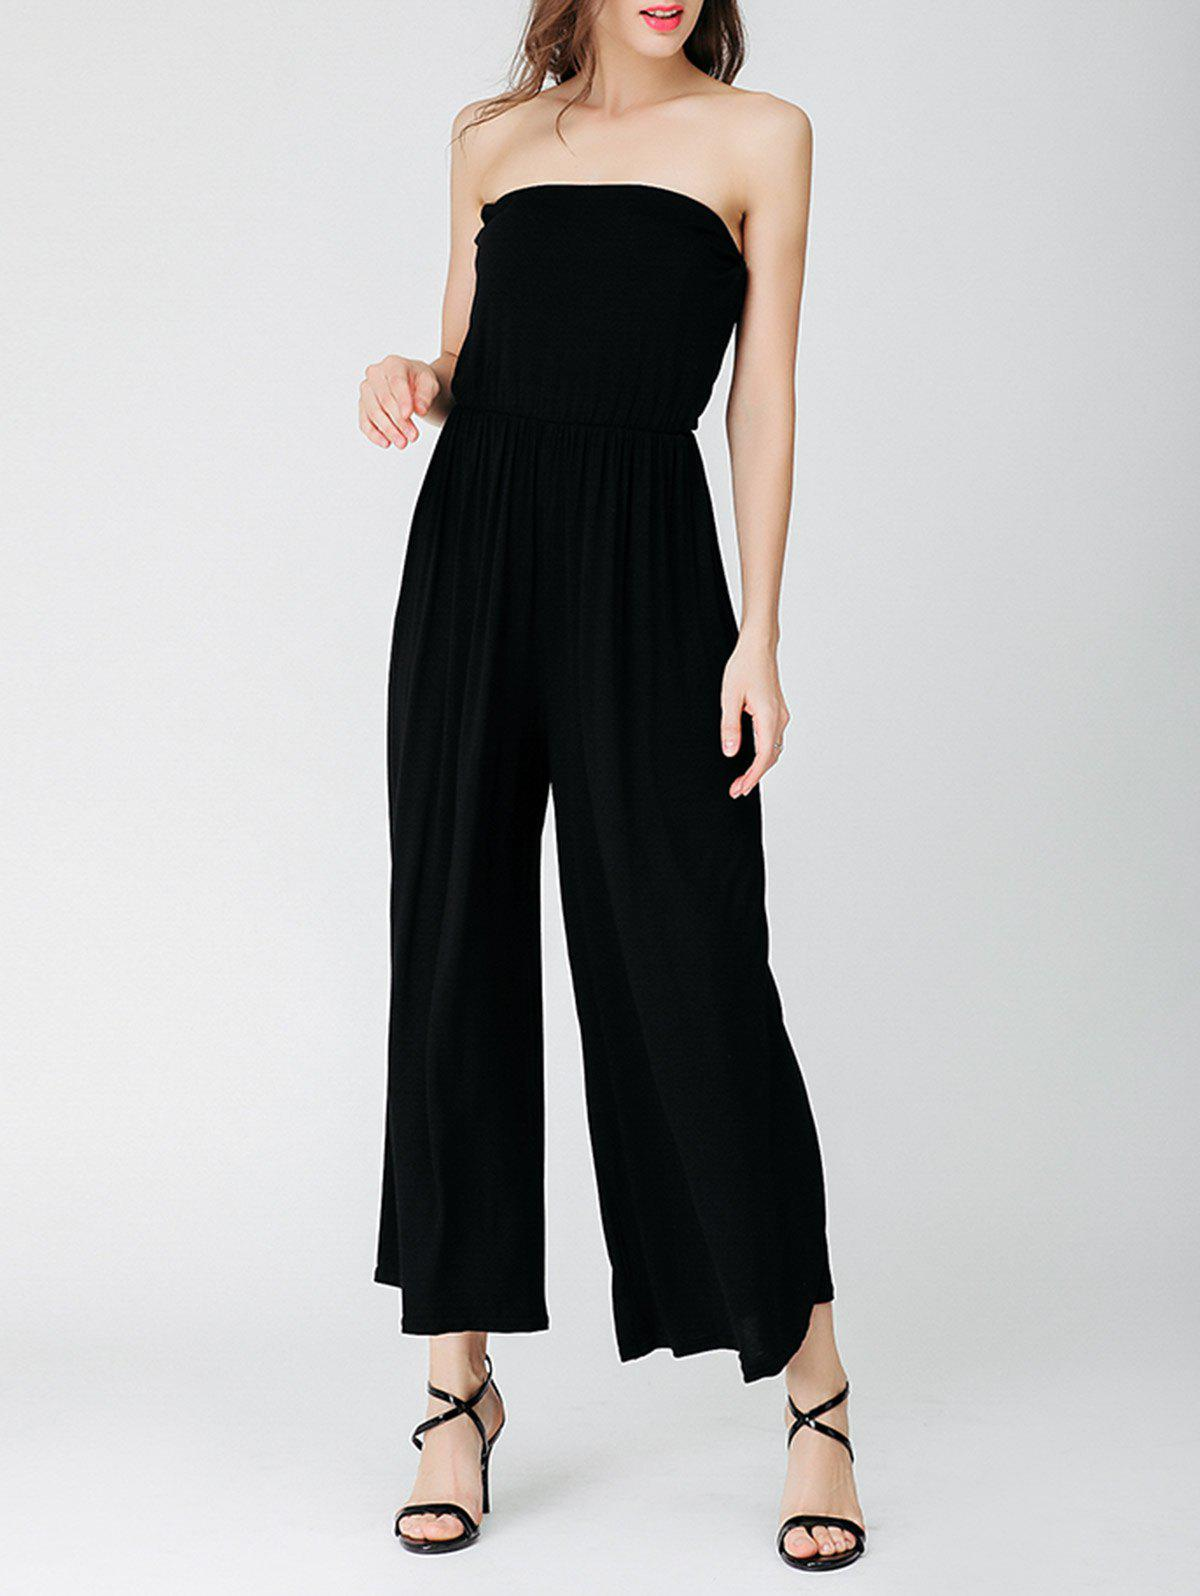 2018 wide leg elastic waist tube jumpsuit black one size in